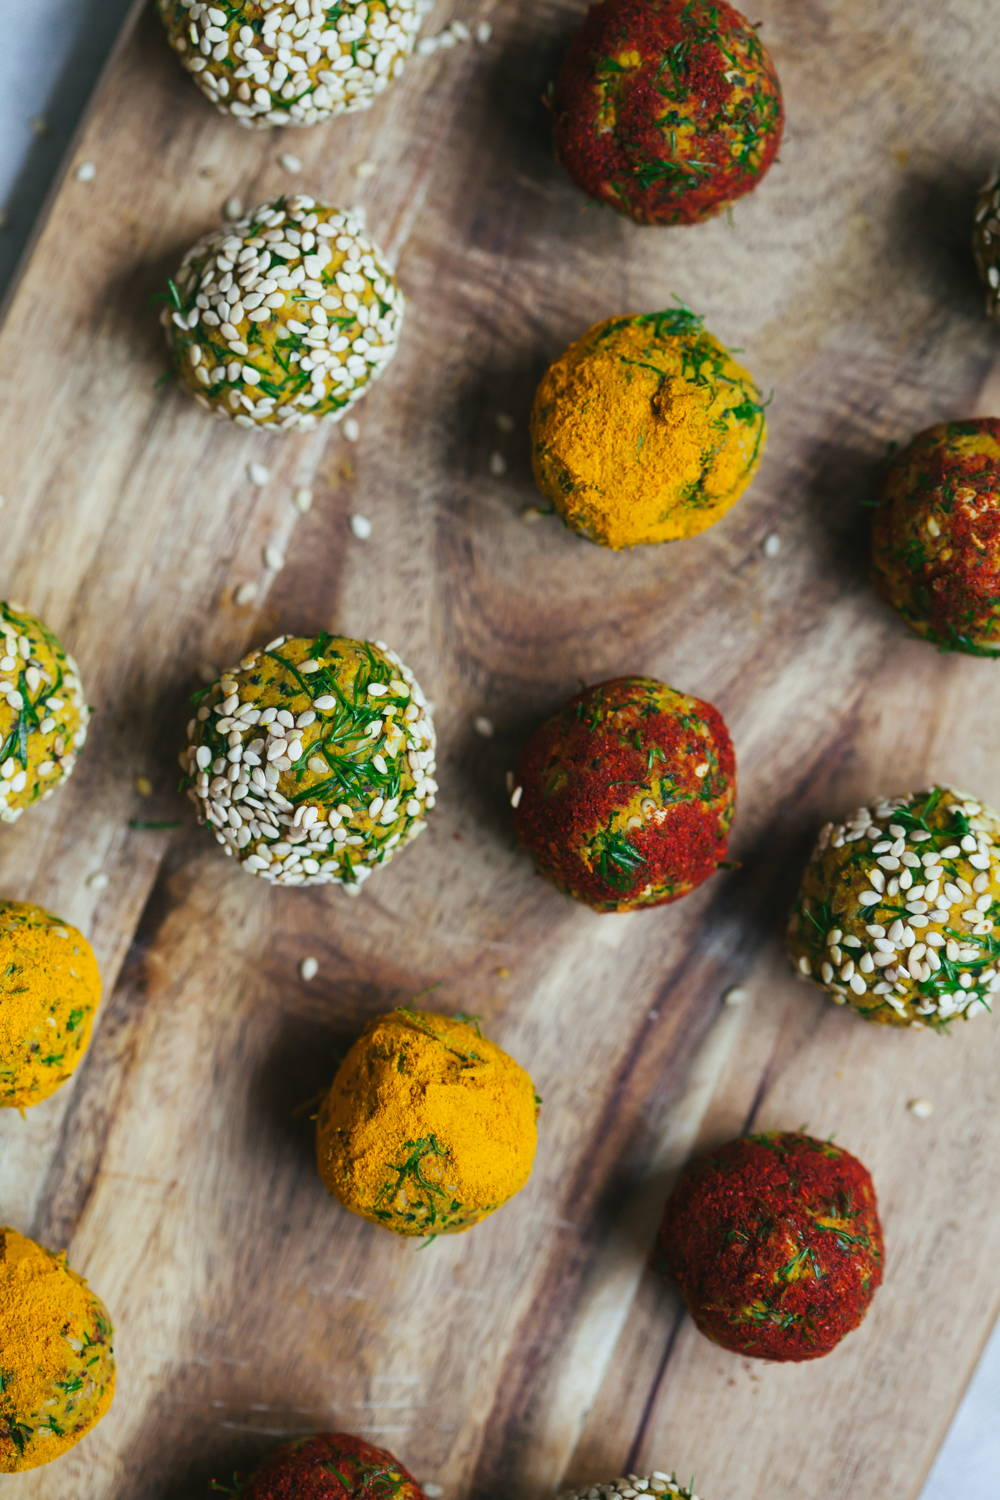 almond pulp vegan, gluten-free, dairy-free savory energy bites to reduce food waste